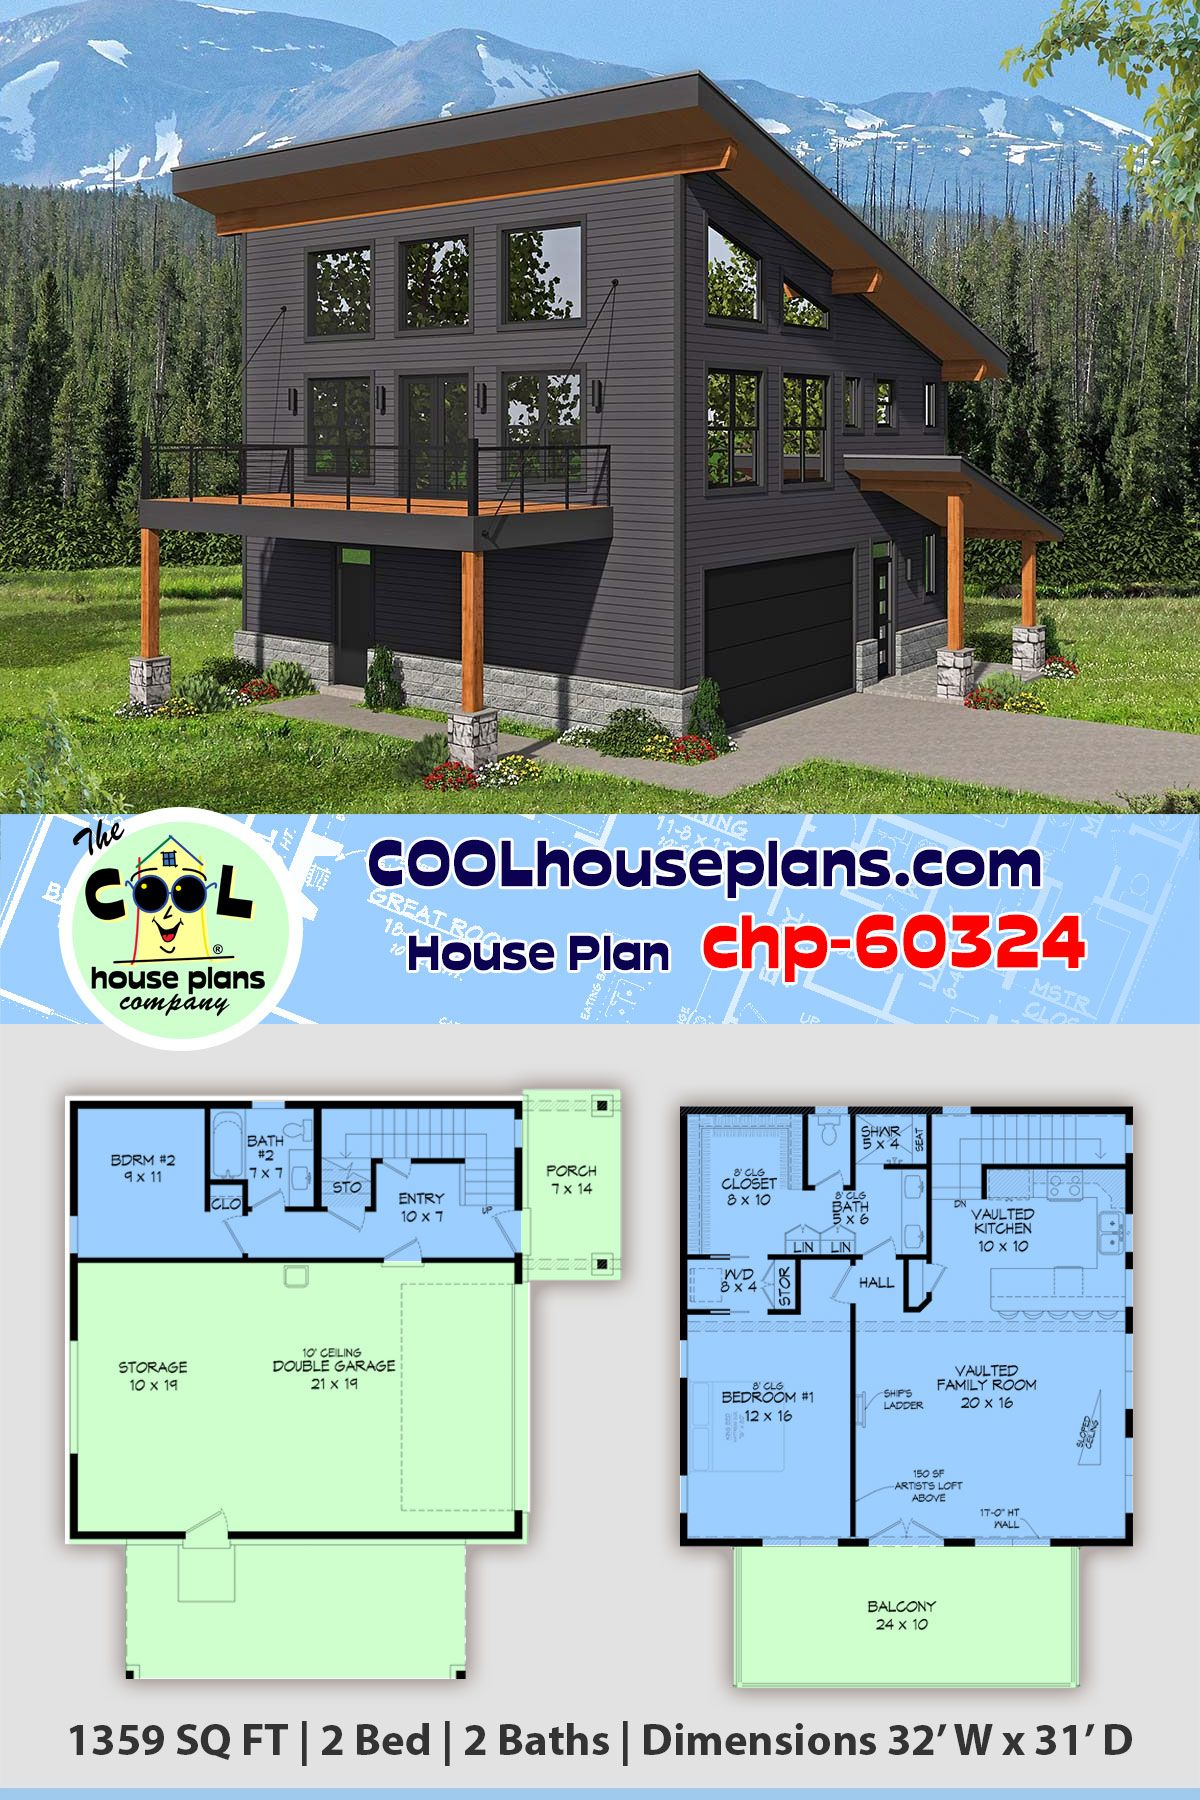 Apartment Over Garage Plan Chp 60324 Is 1359 Sq Ft 2 Bedrooms 2 Baths With Upper Balcony Garage Apartment Plan Carriage House Plans Garage House Plans